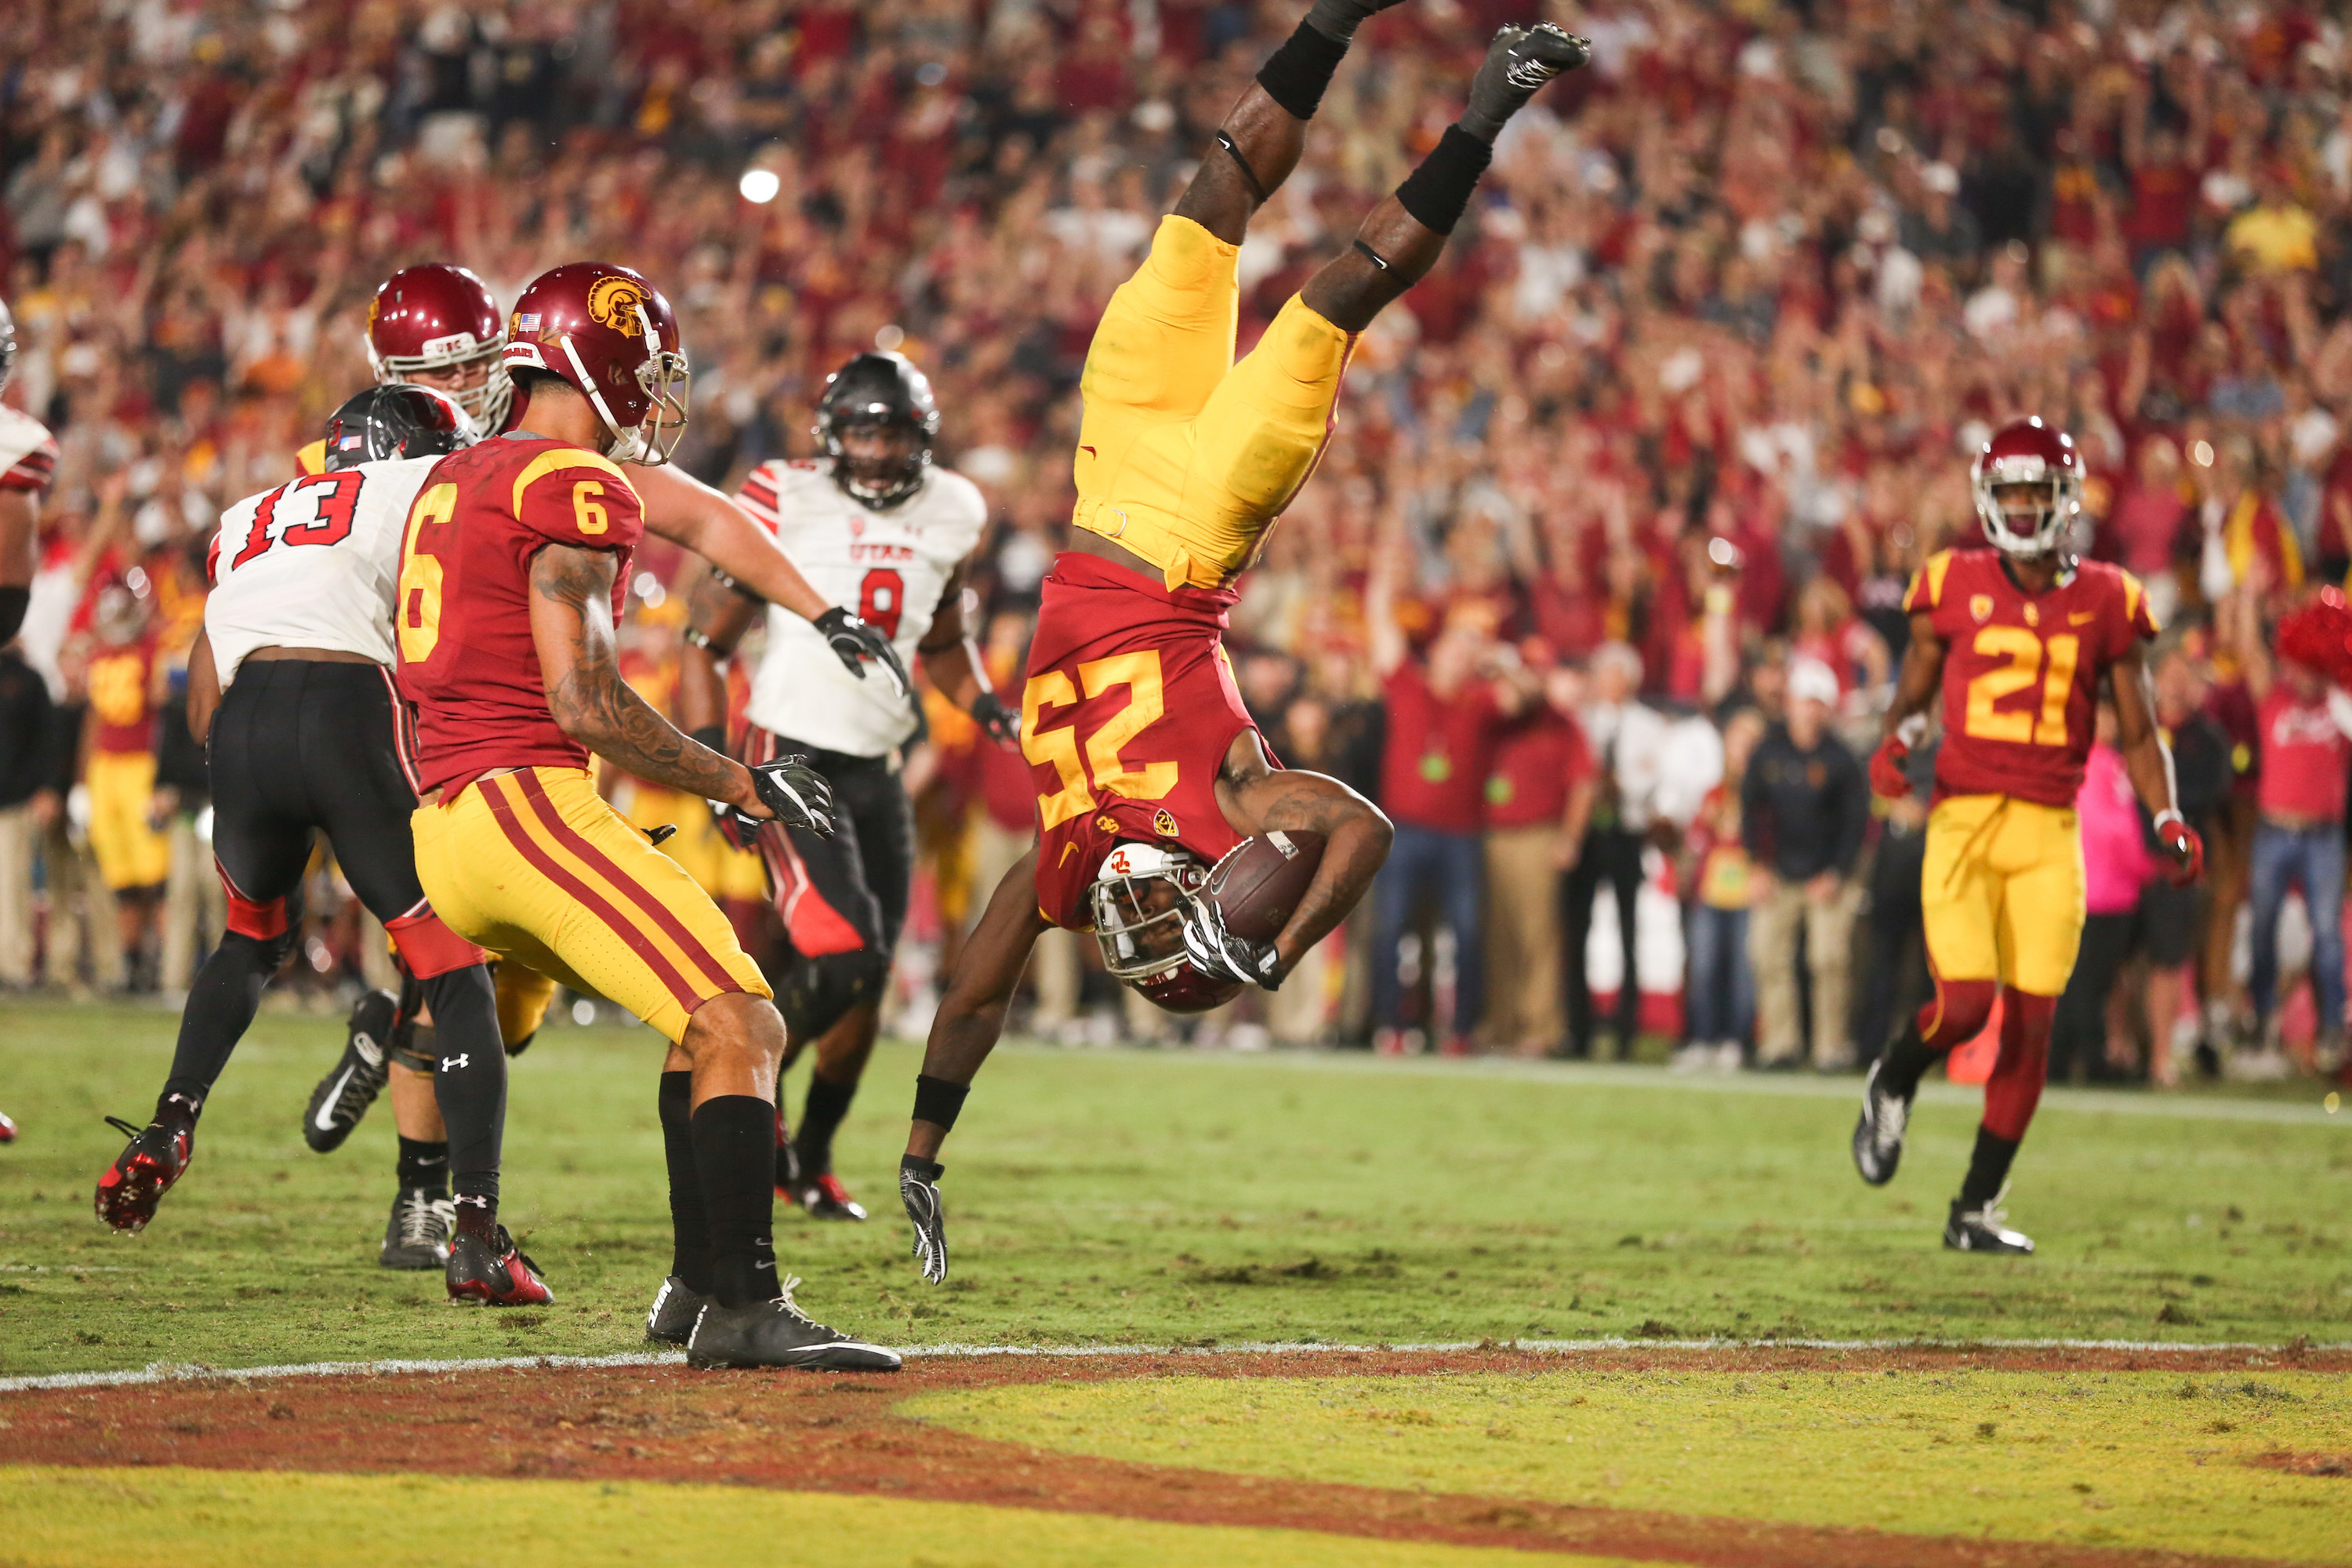 A football player is seen upside down holding a football at a USC game